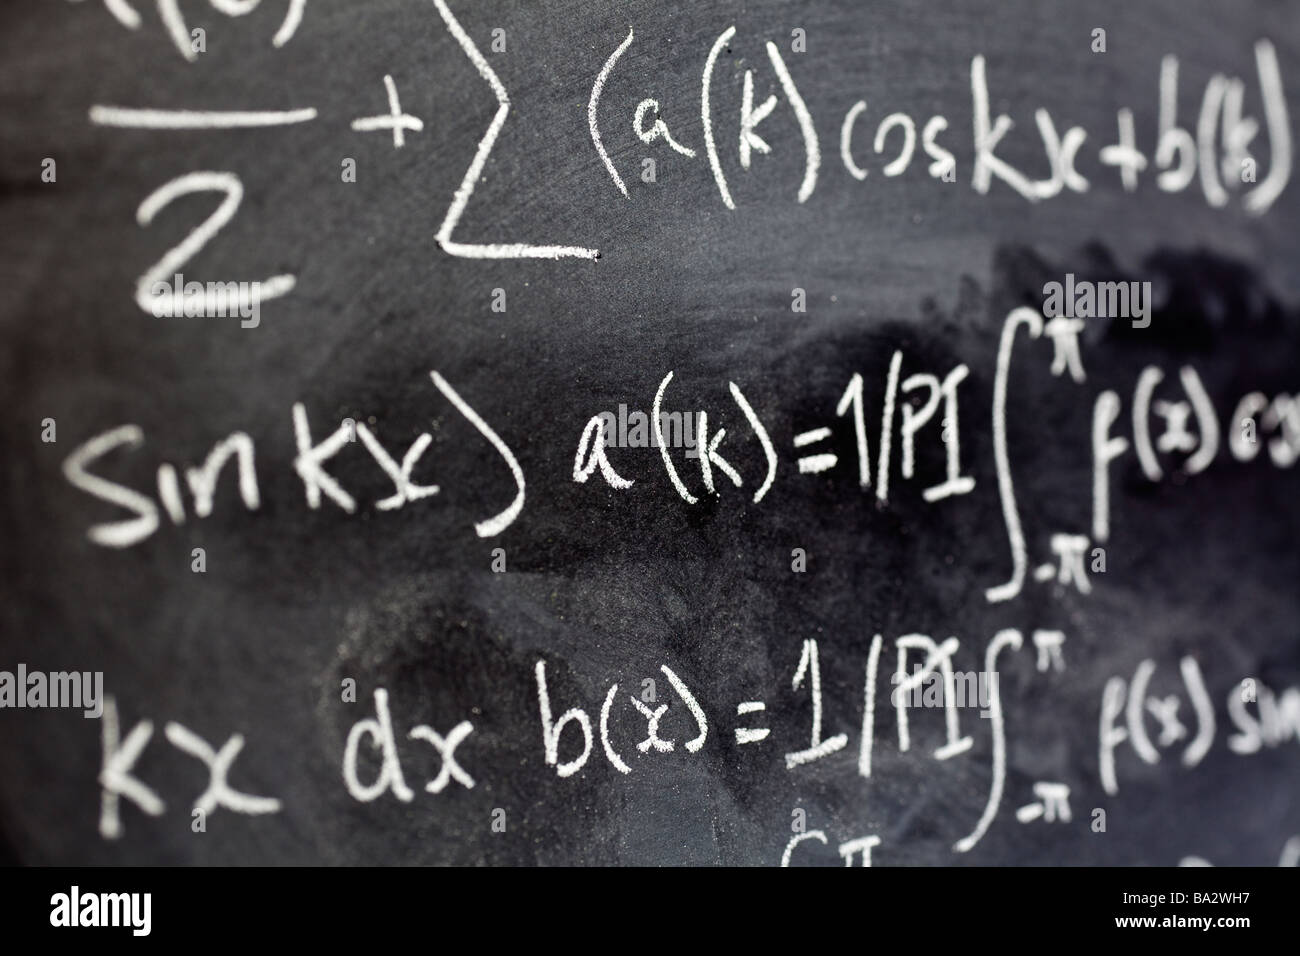 Close up of mathematical equations written on a blackboard in a classroom close up - Stock Image